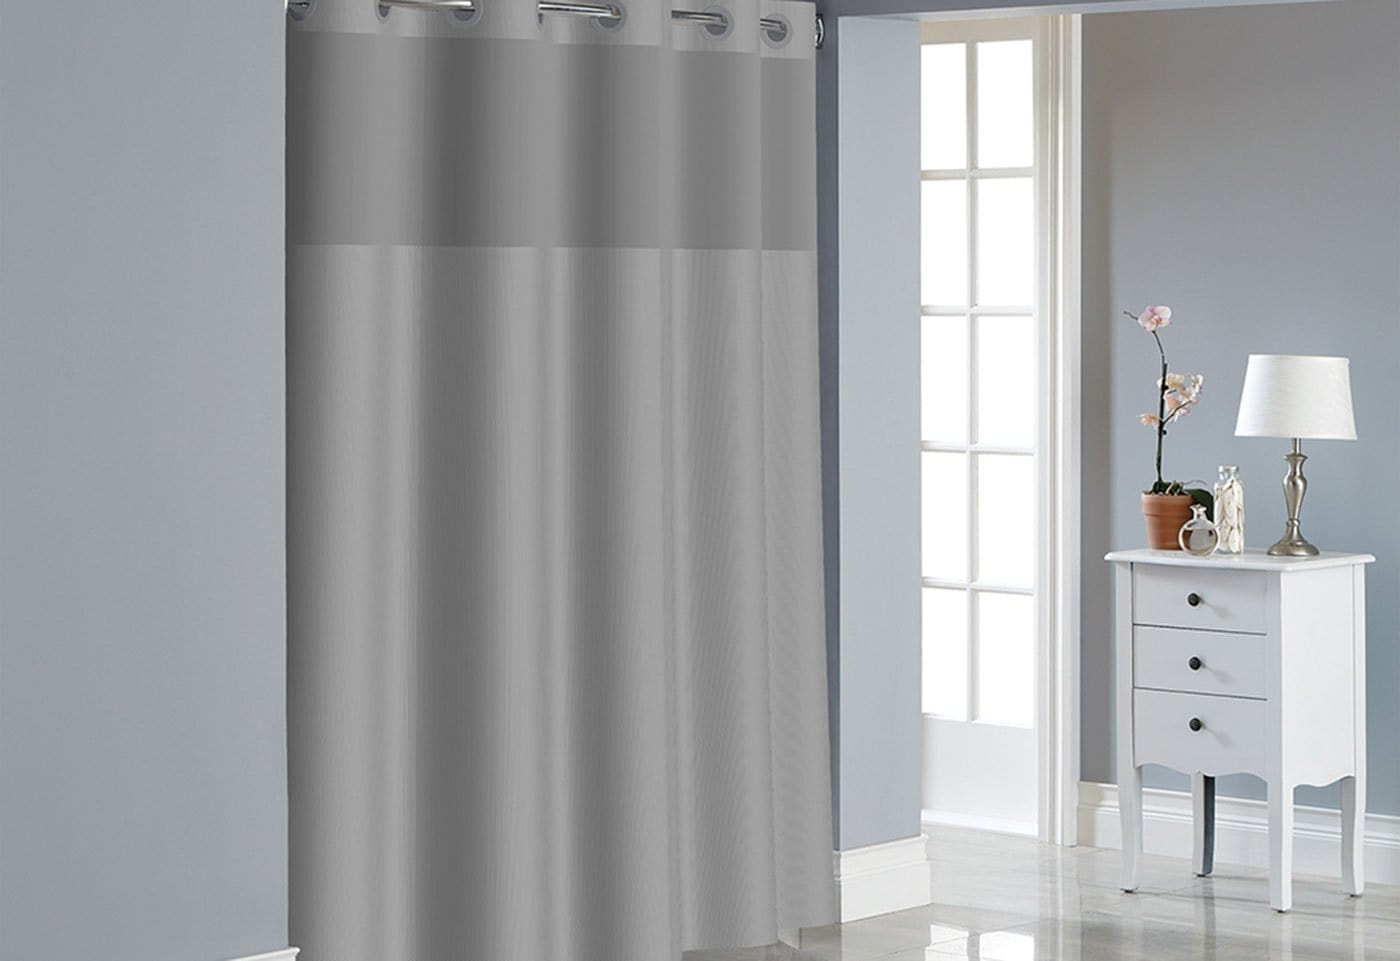 Hookless® Dobby Texture Shower Curtain Includes Snap On/Off Replaceable Liner - 71 x 74 / Drizzle